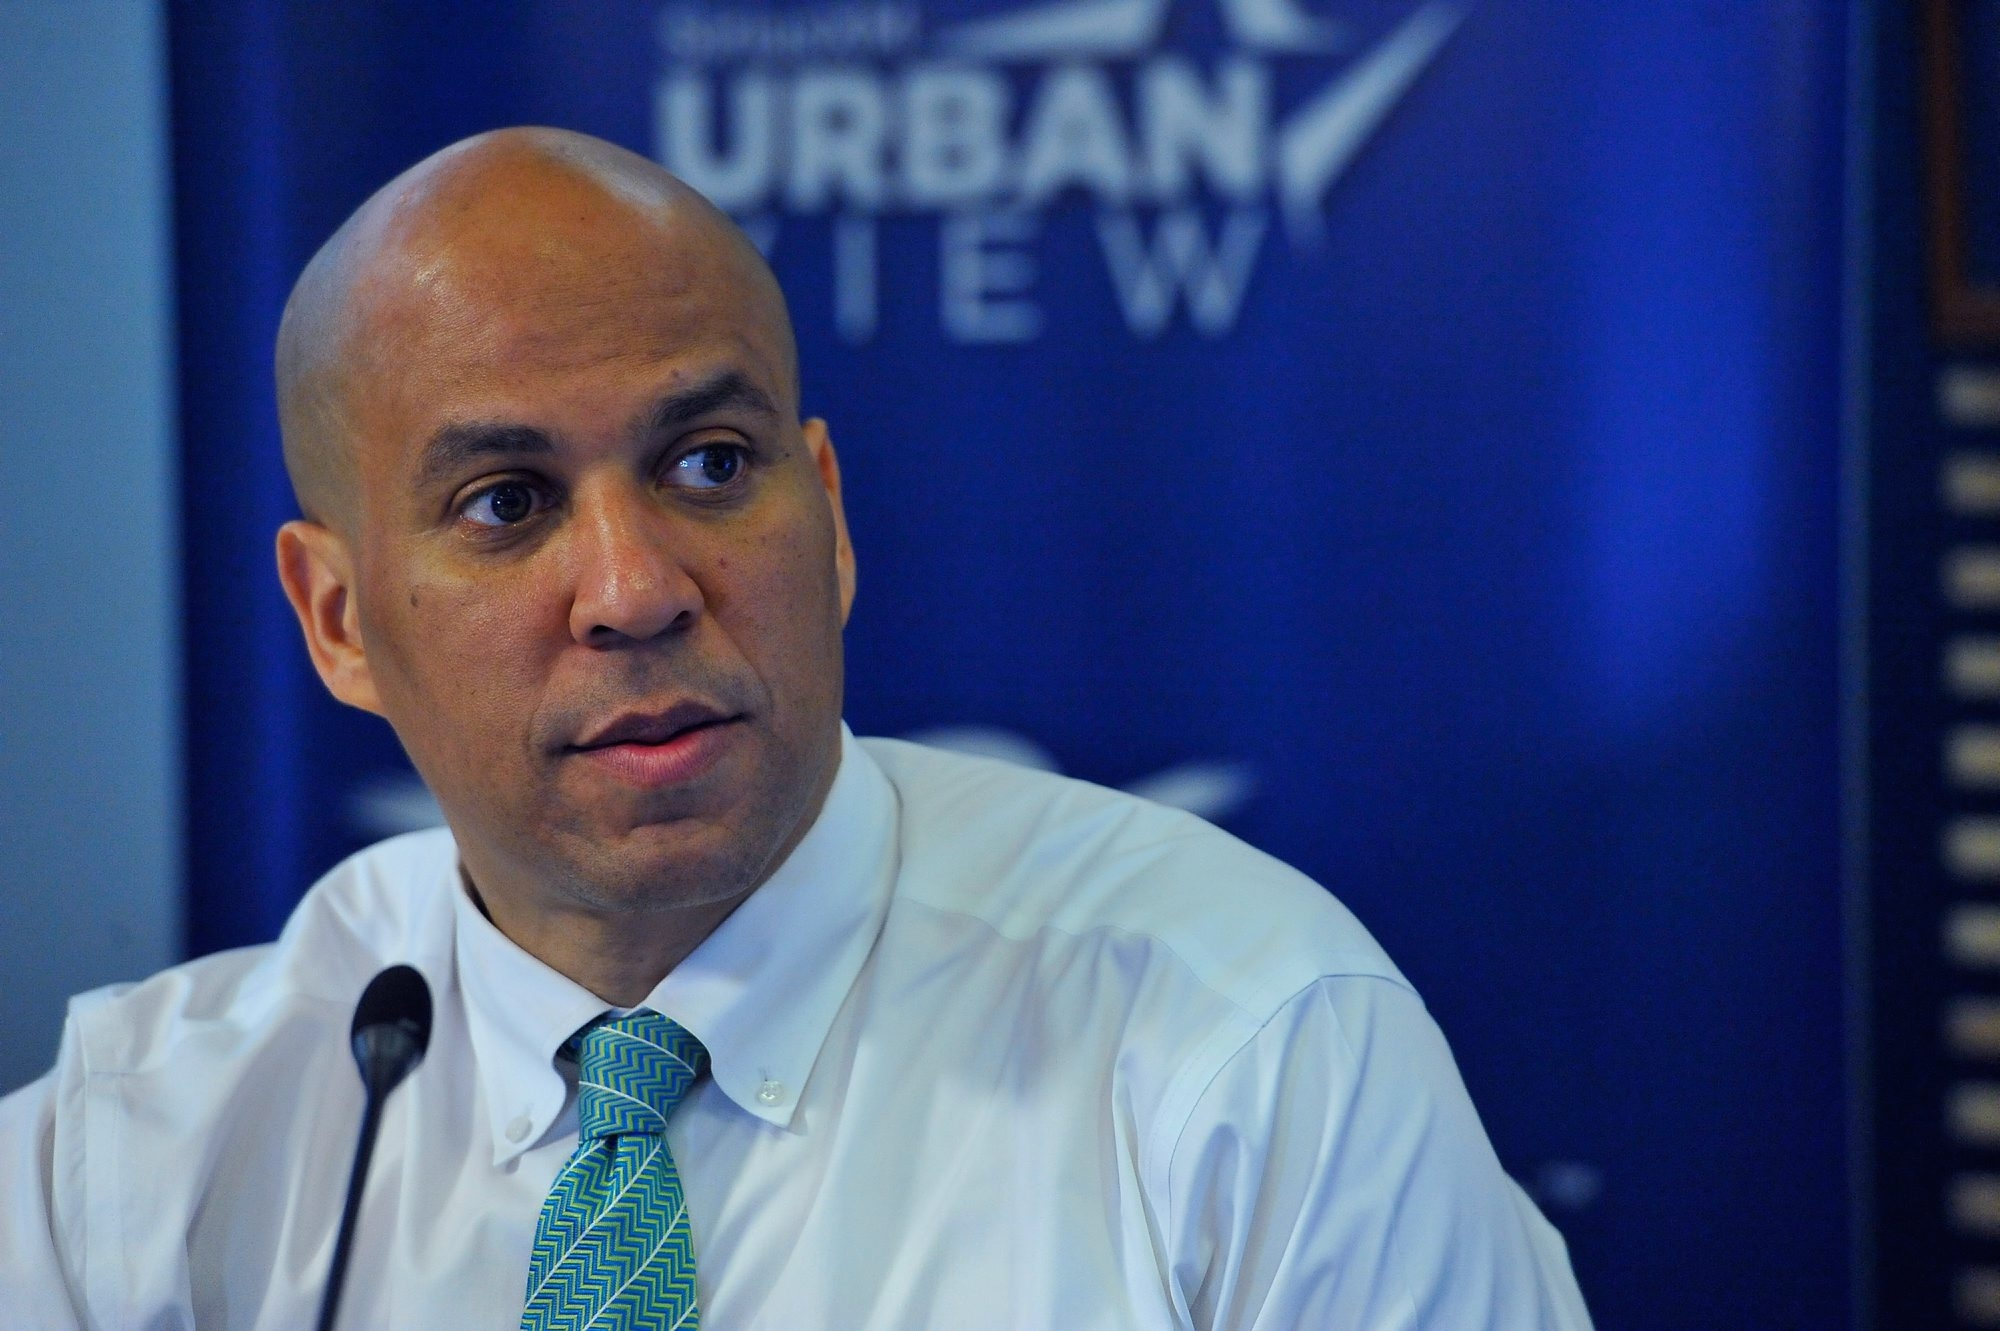 """I believe that we are losing, through policy choices, a lot of things that have made us great as a nation,"" said Sen. Cory Booker. (Getty Images)"